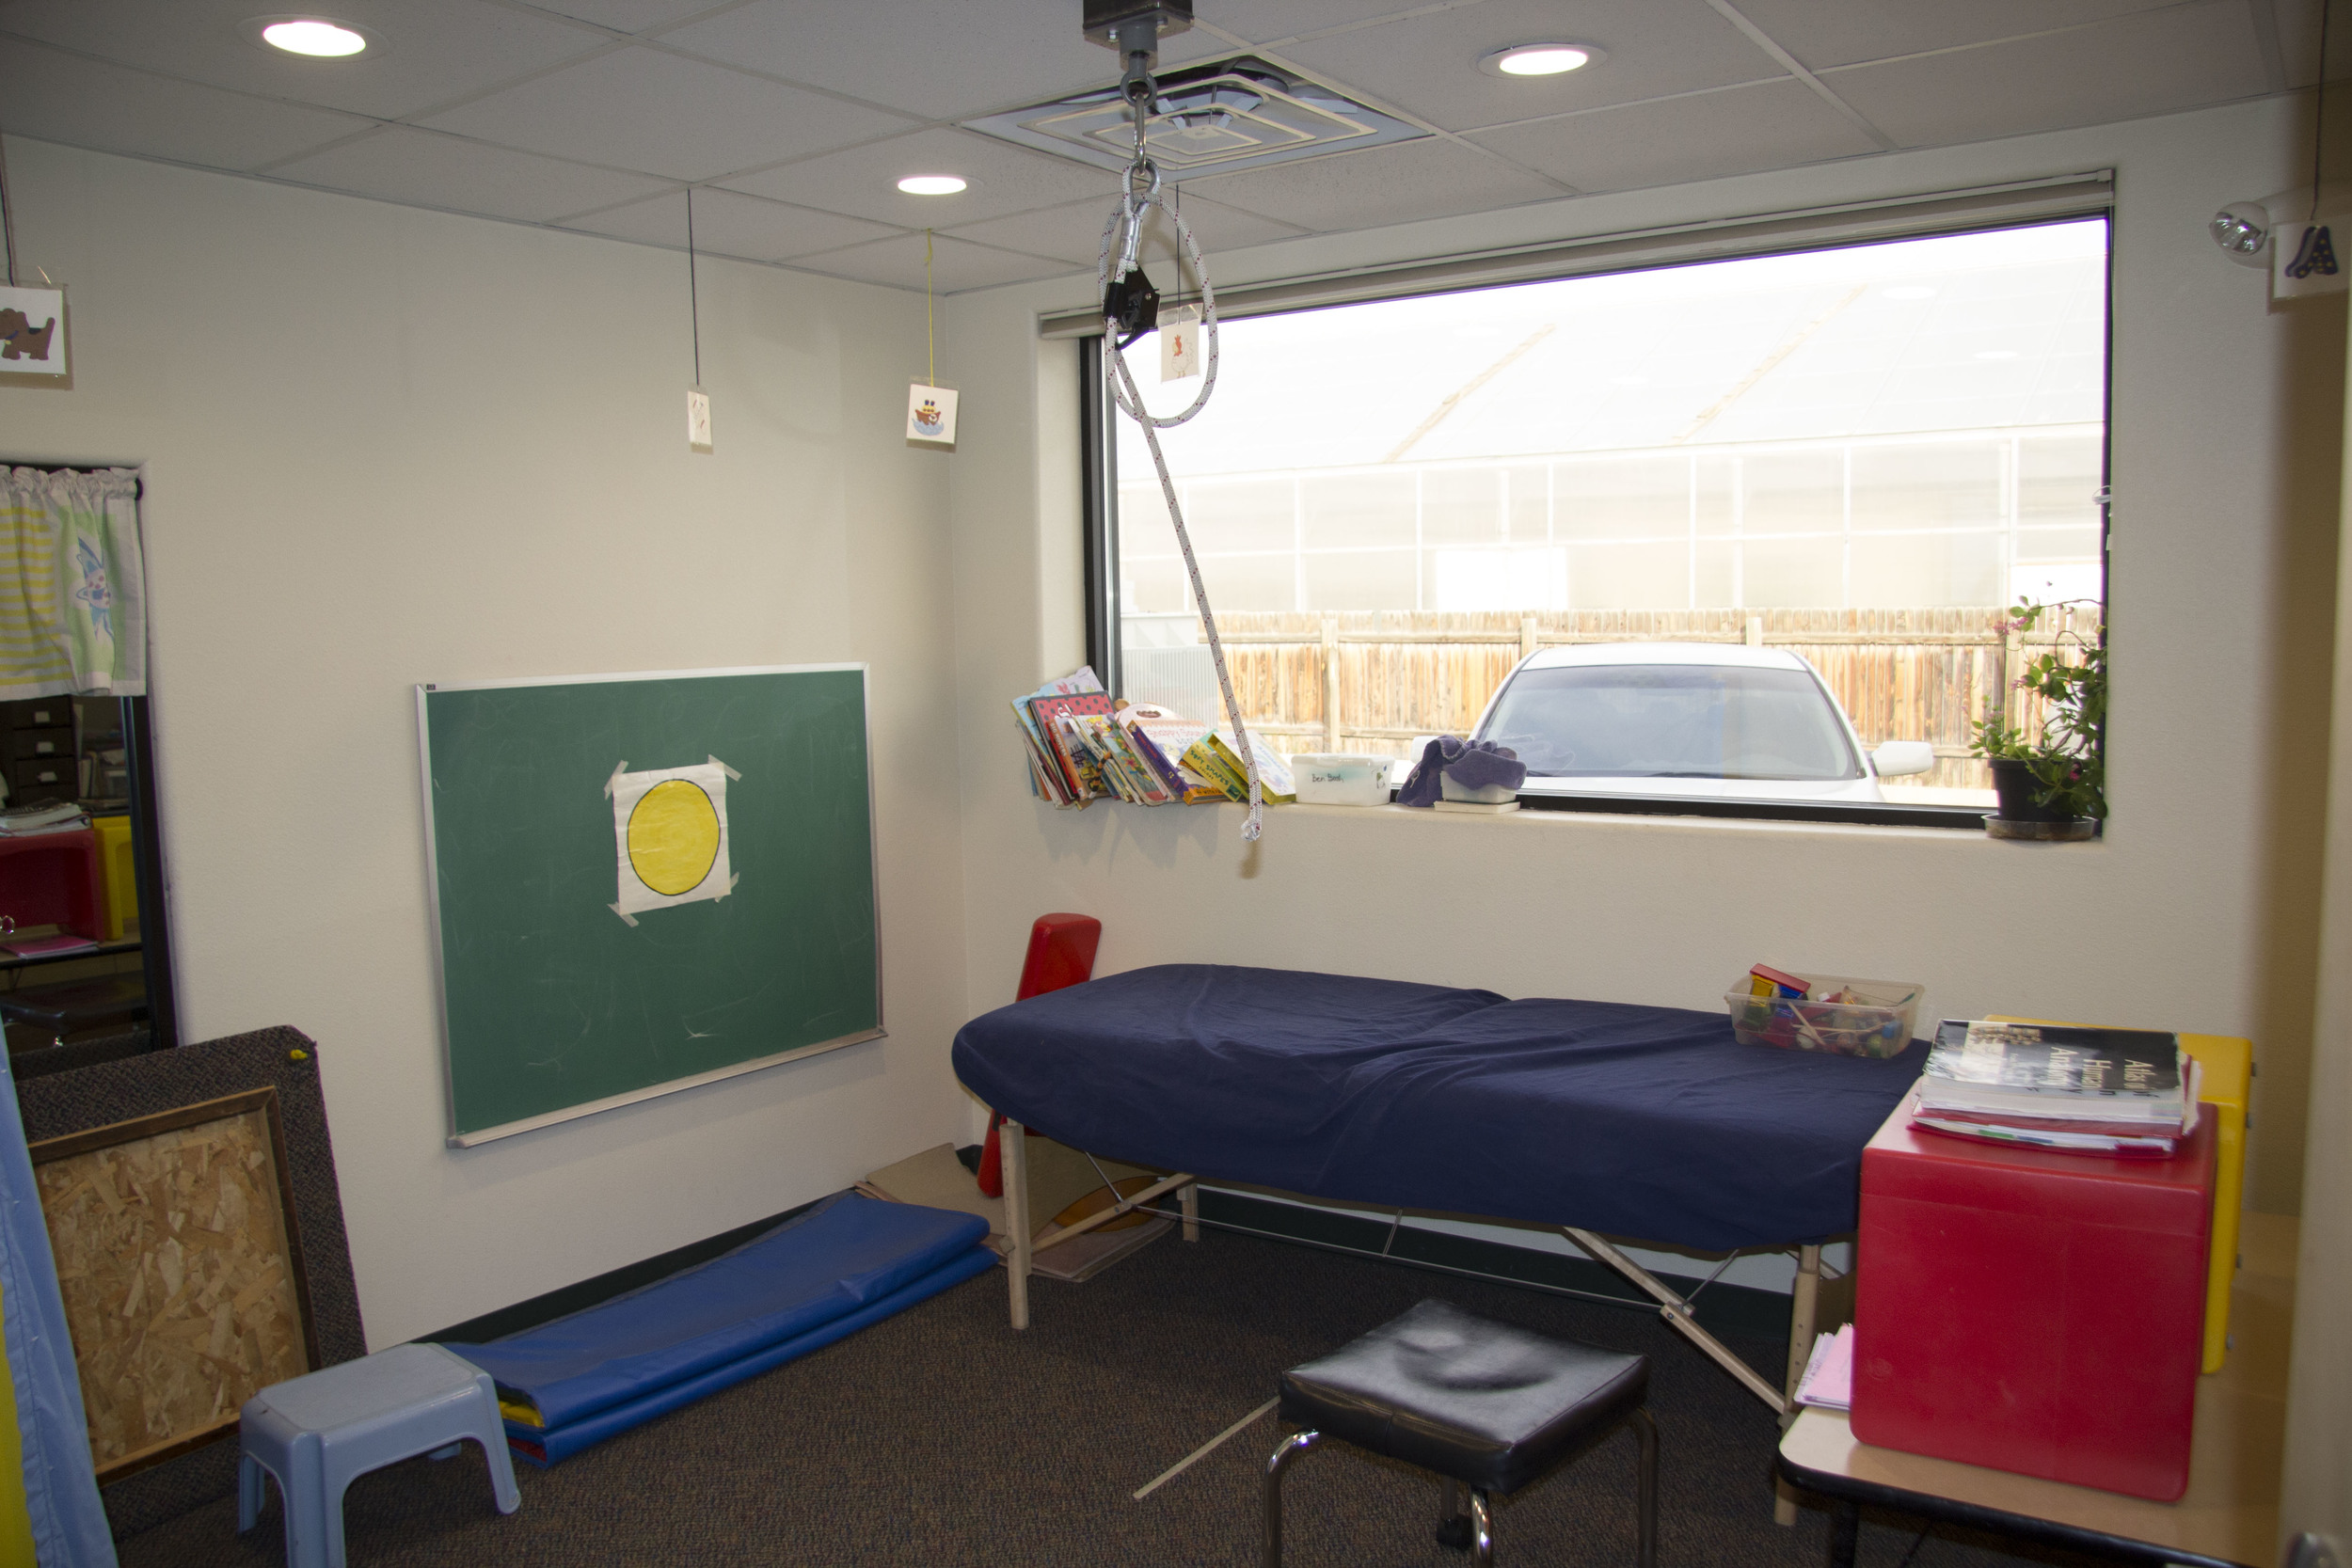 One of TLC's on-site pediatric therapy rooms, used for occupational, physical, and speech therapies